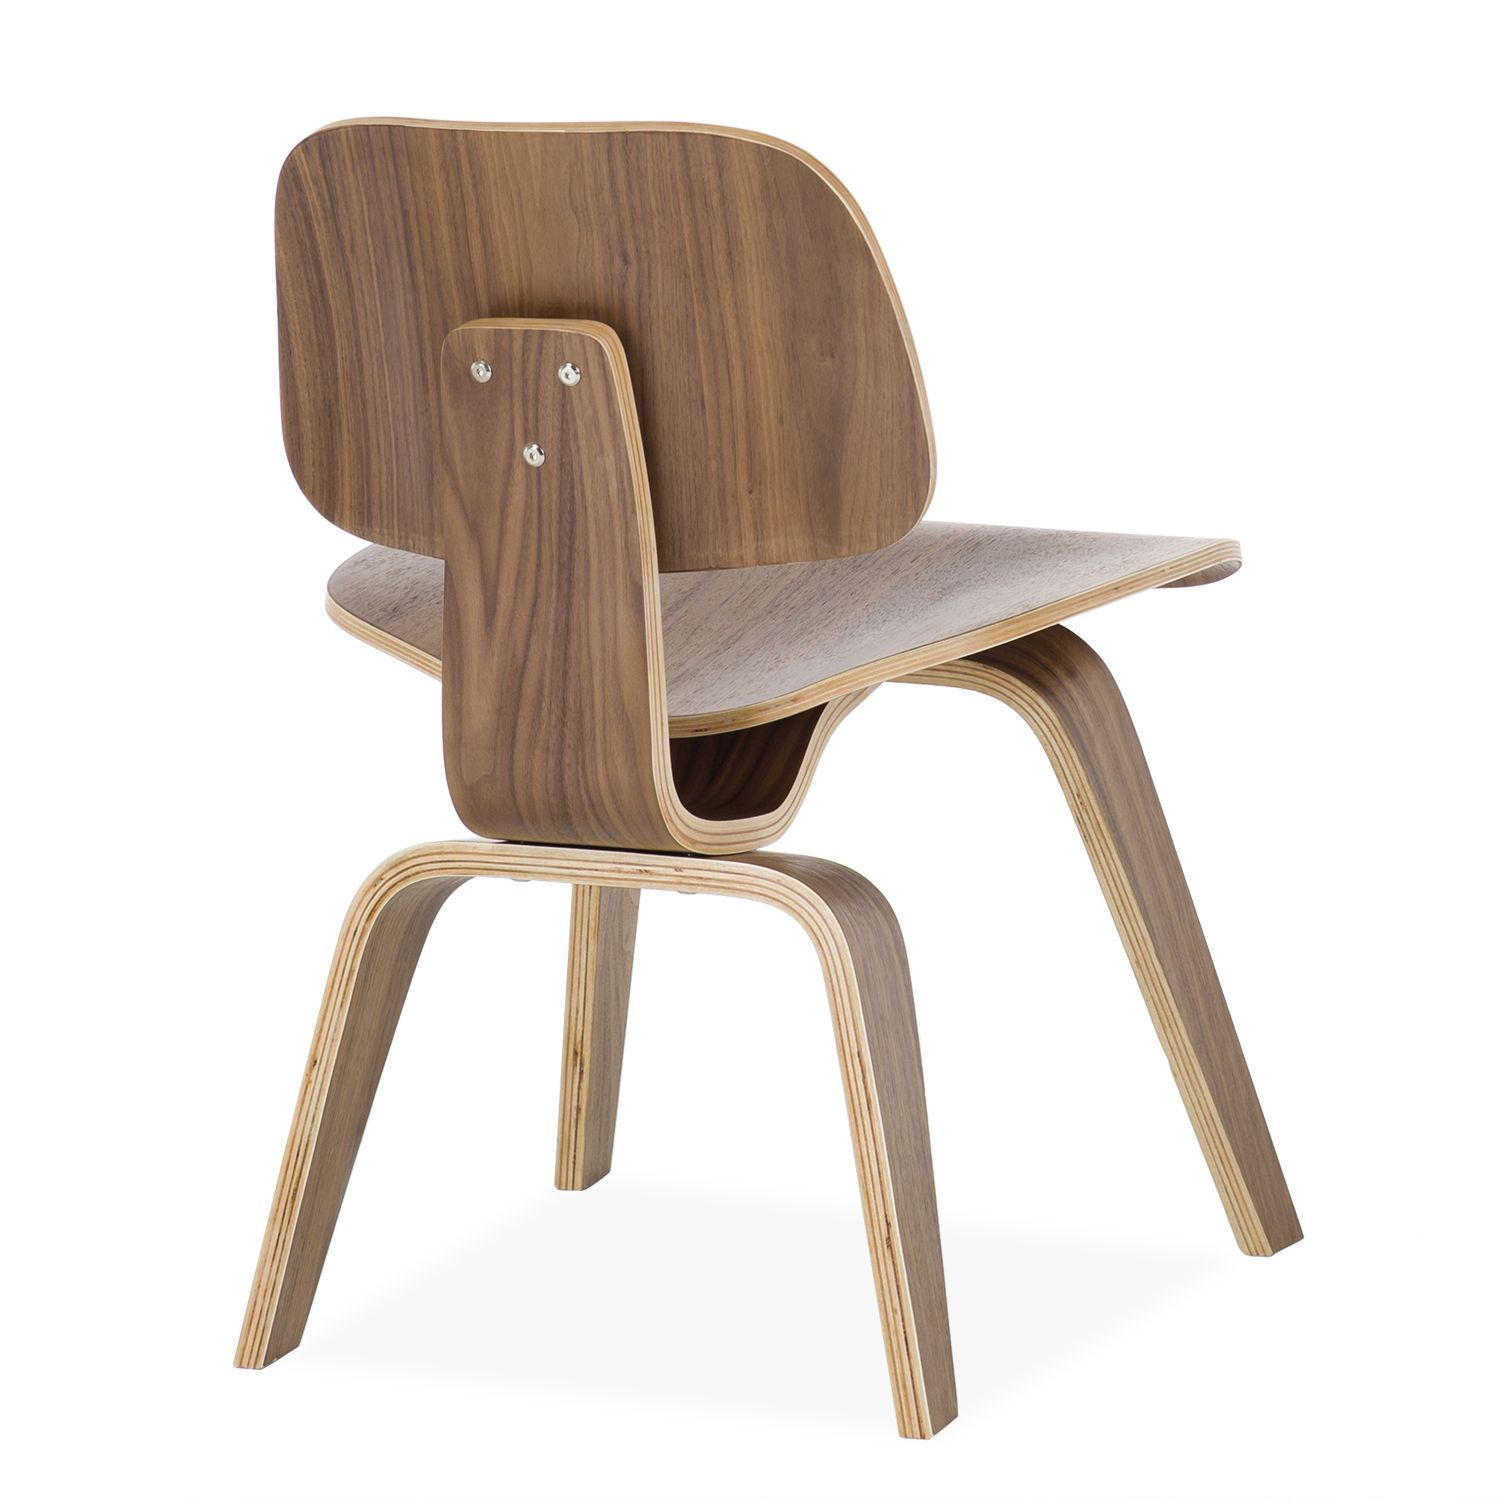 Plywood Lounge Chair Inspired By Eames